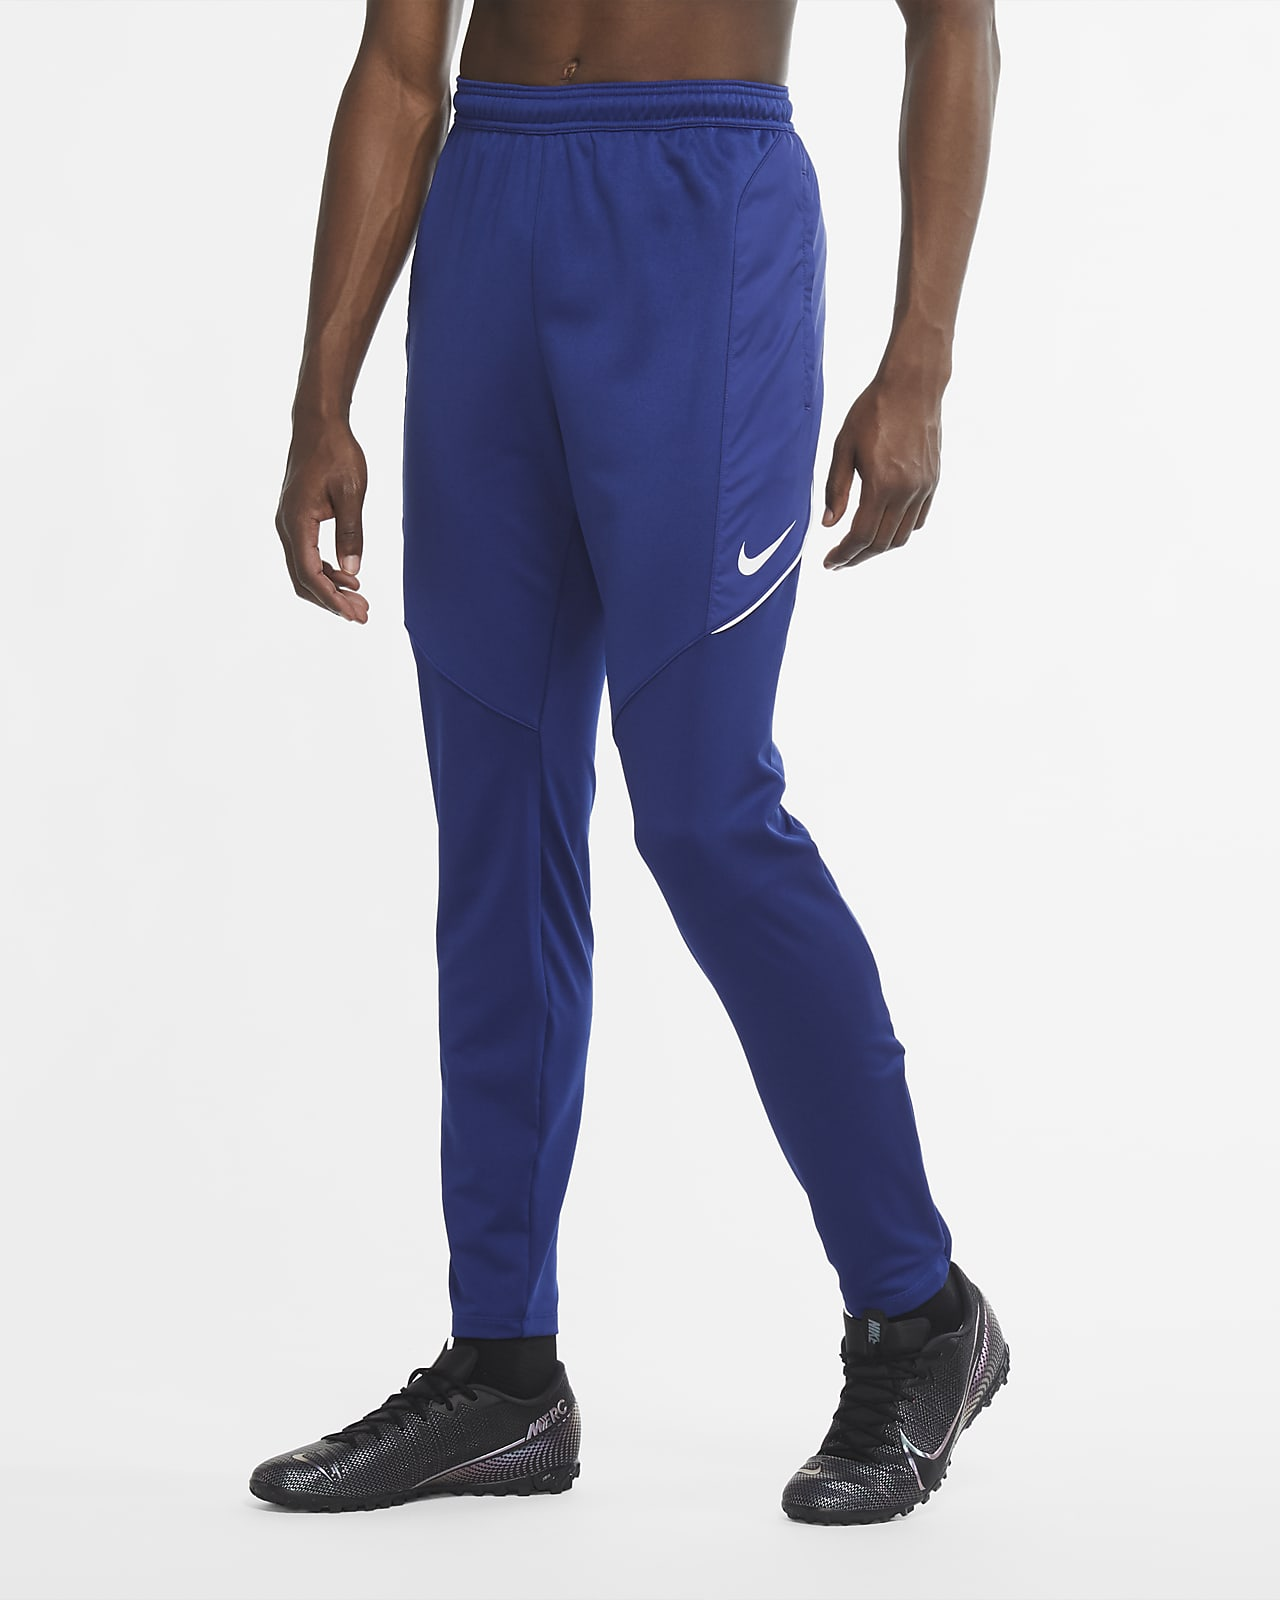 Pantalones de fútbol para hombre Nike Dri-FIT Strike Winter Warrior